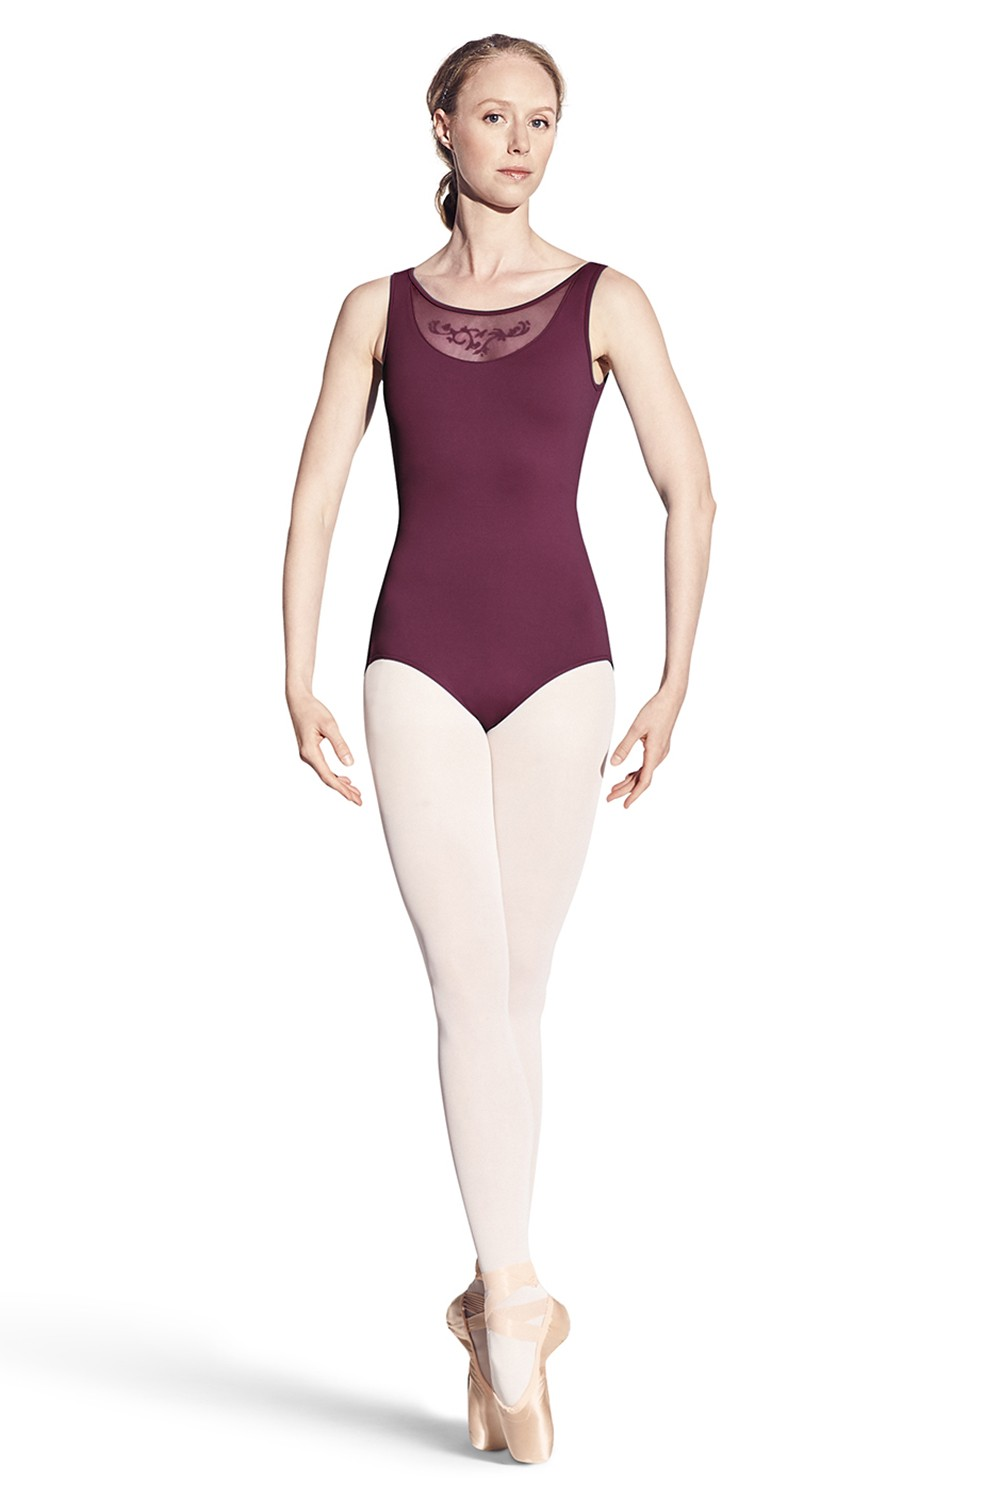 Amou Women's Dance Leotards